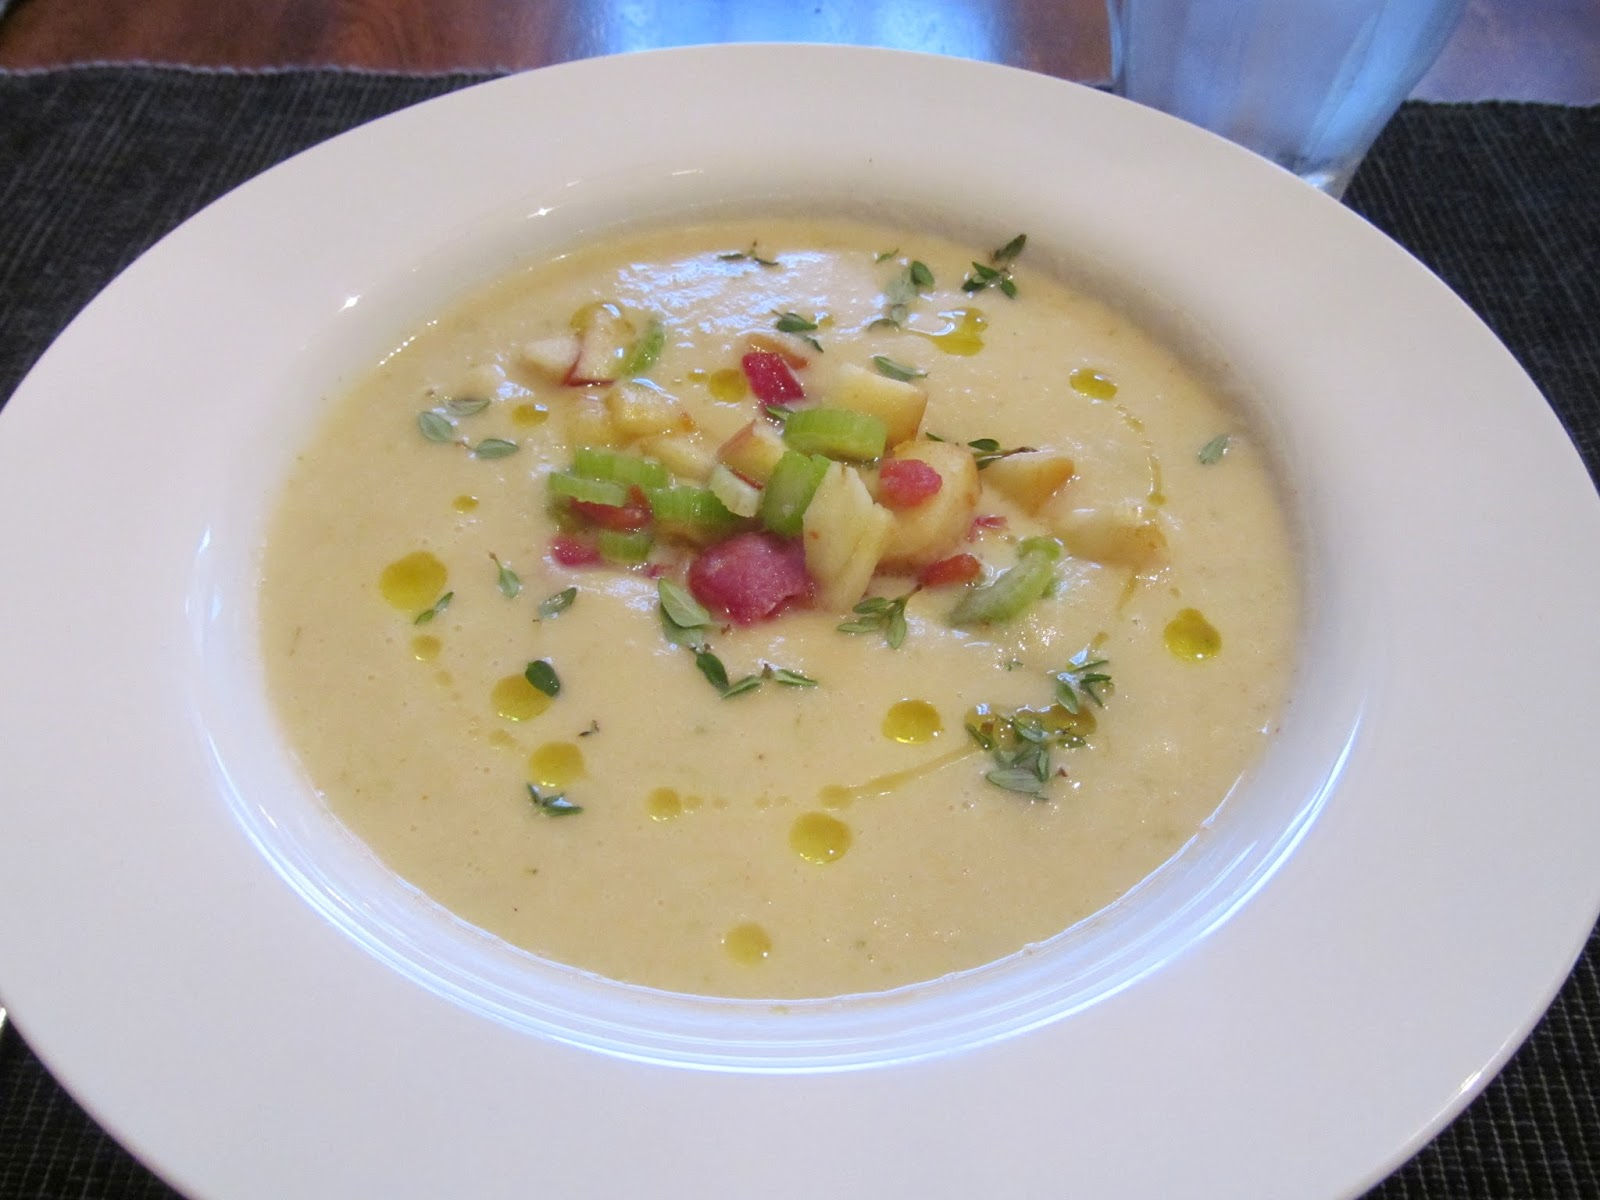 ... love of dinner: Celery Root (Celeriac) Soup with Apples and Bacon (GF